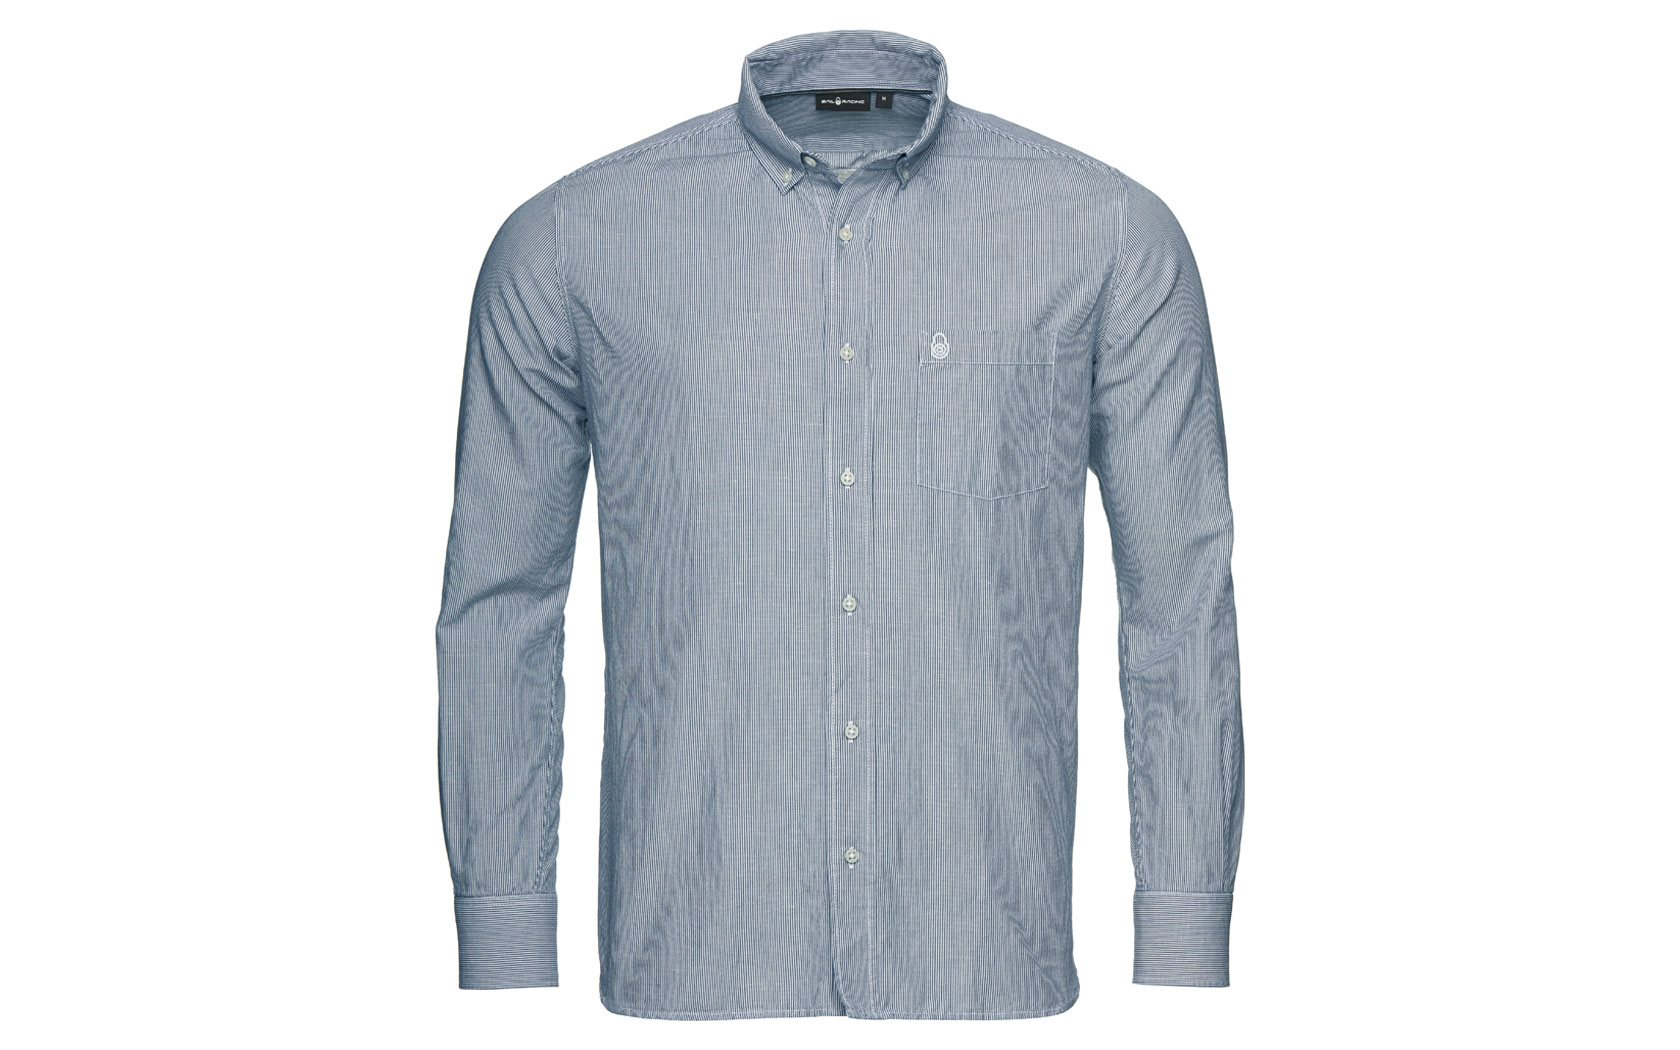 BOWMAN COTTON/LINEN SHIRT